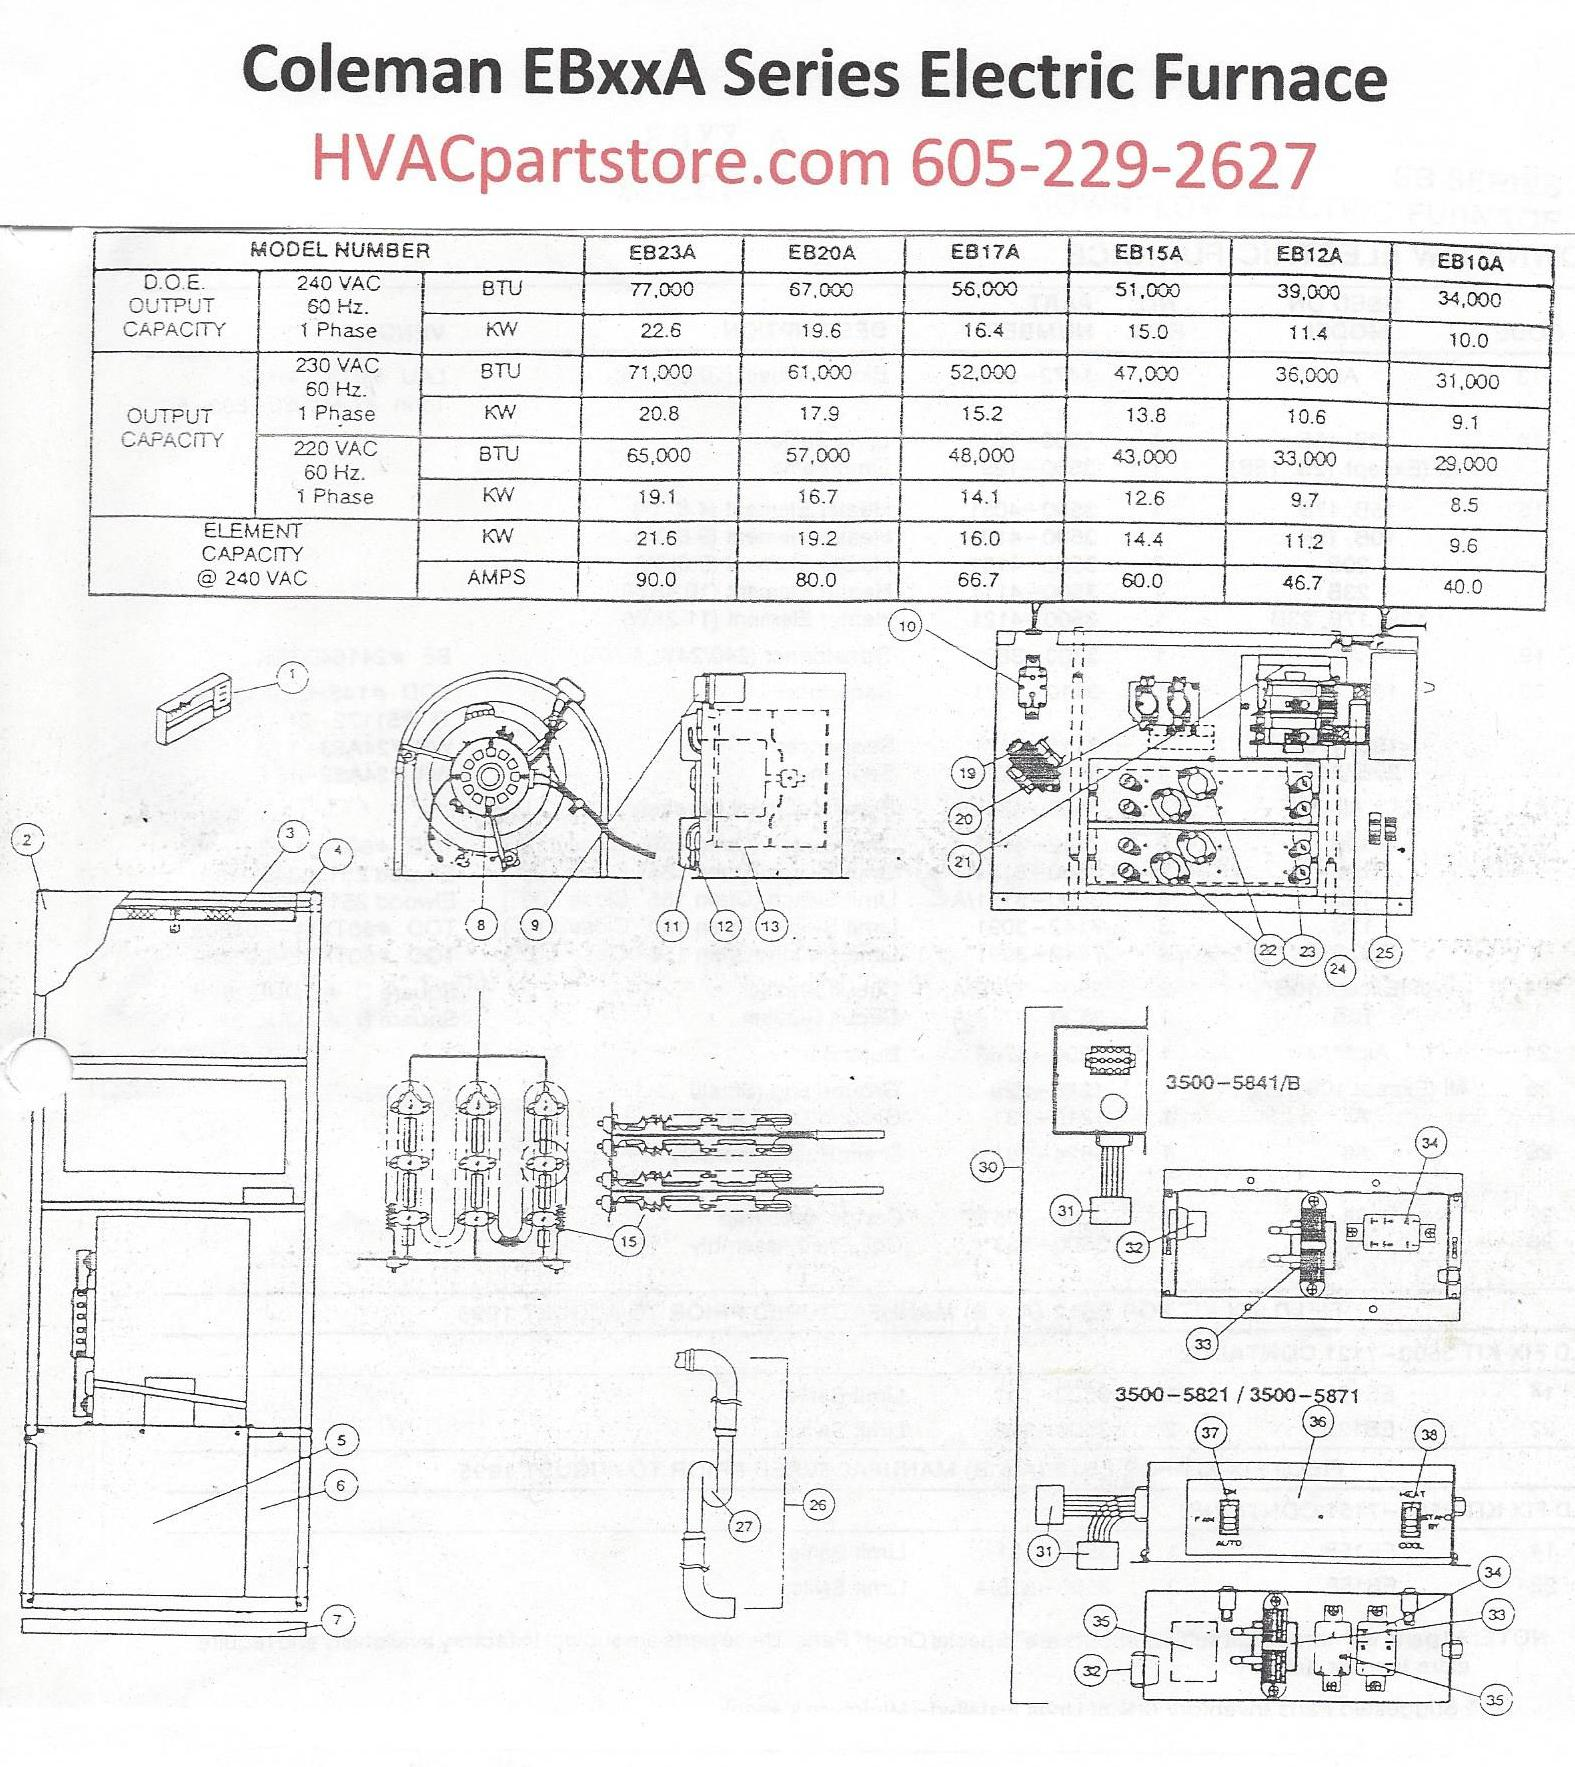 wiring diagram for central air sys – the wiring diagram,Wiring diagram,Wiring Diagram For Central Air Sys